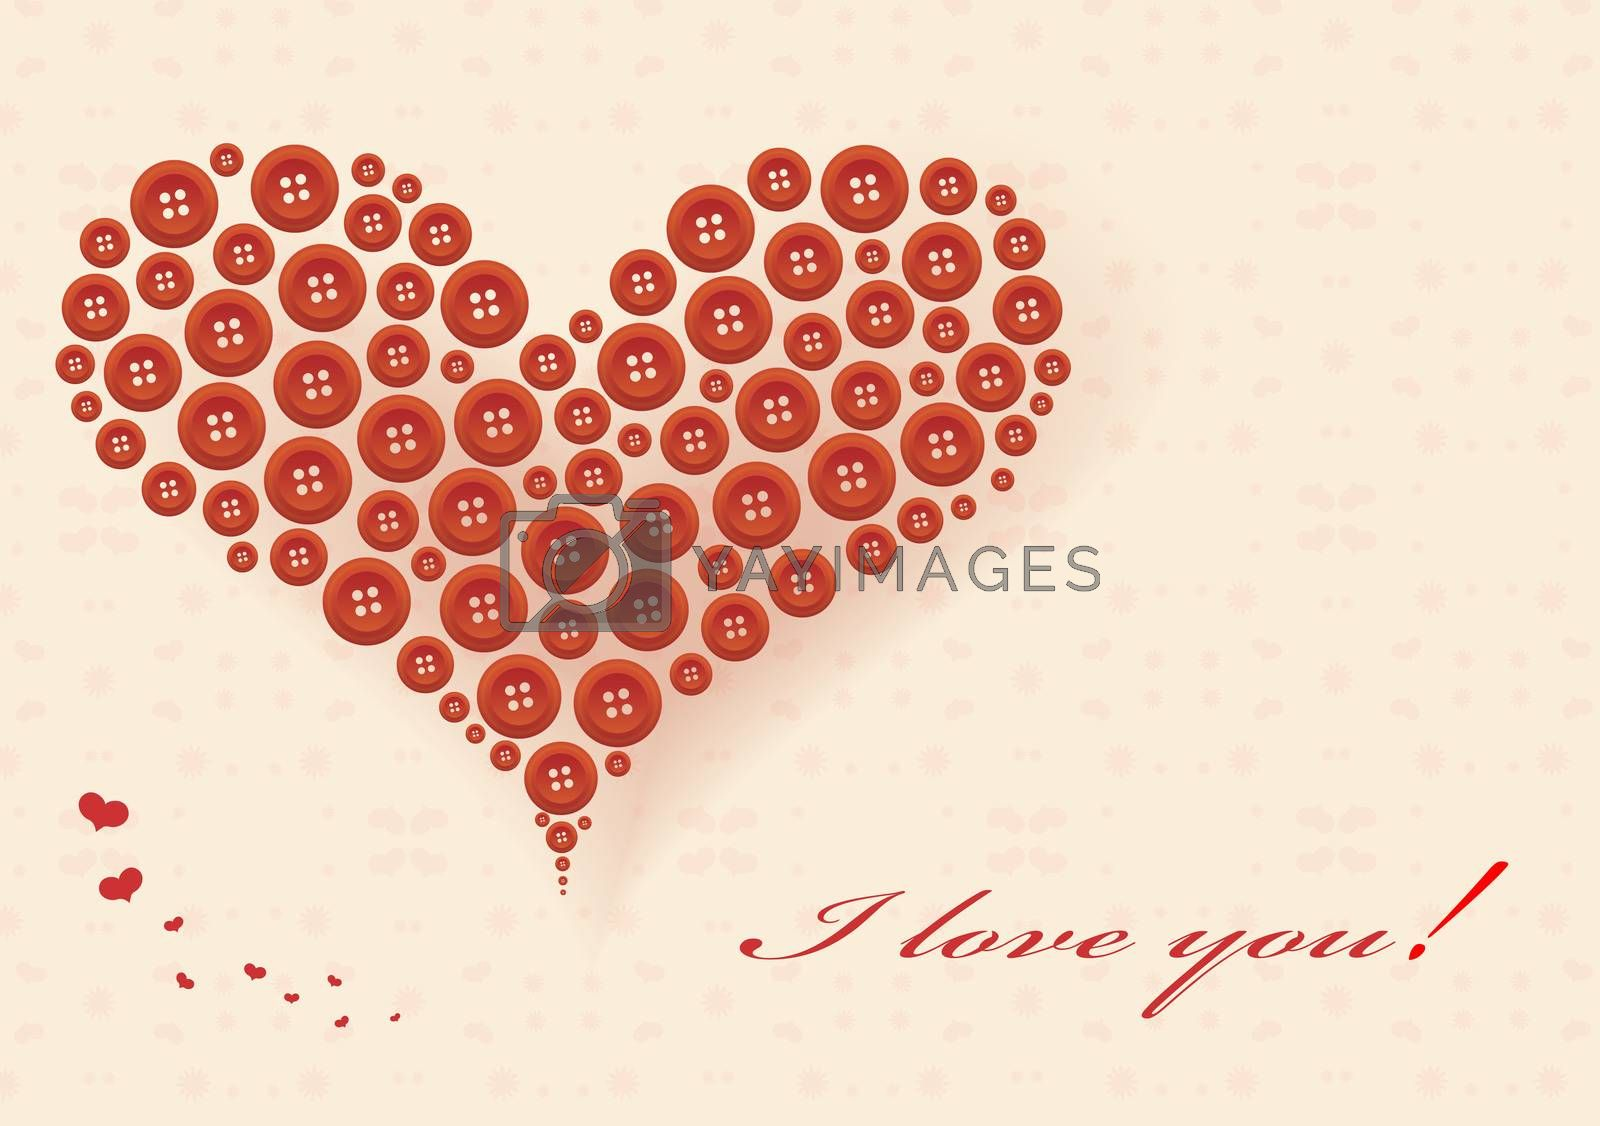 Stylized heart made of red buttons. Greeting card for Valentine's Day.